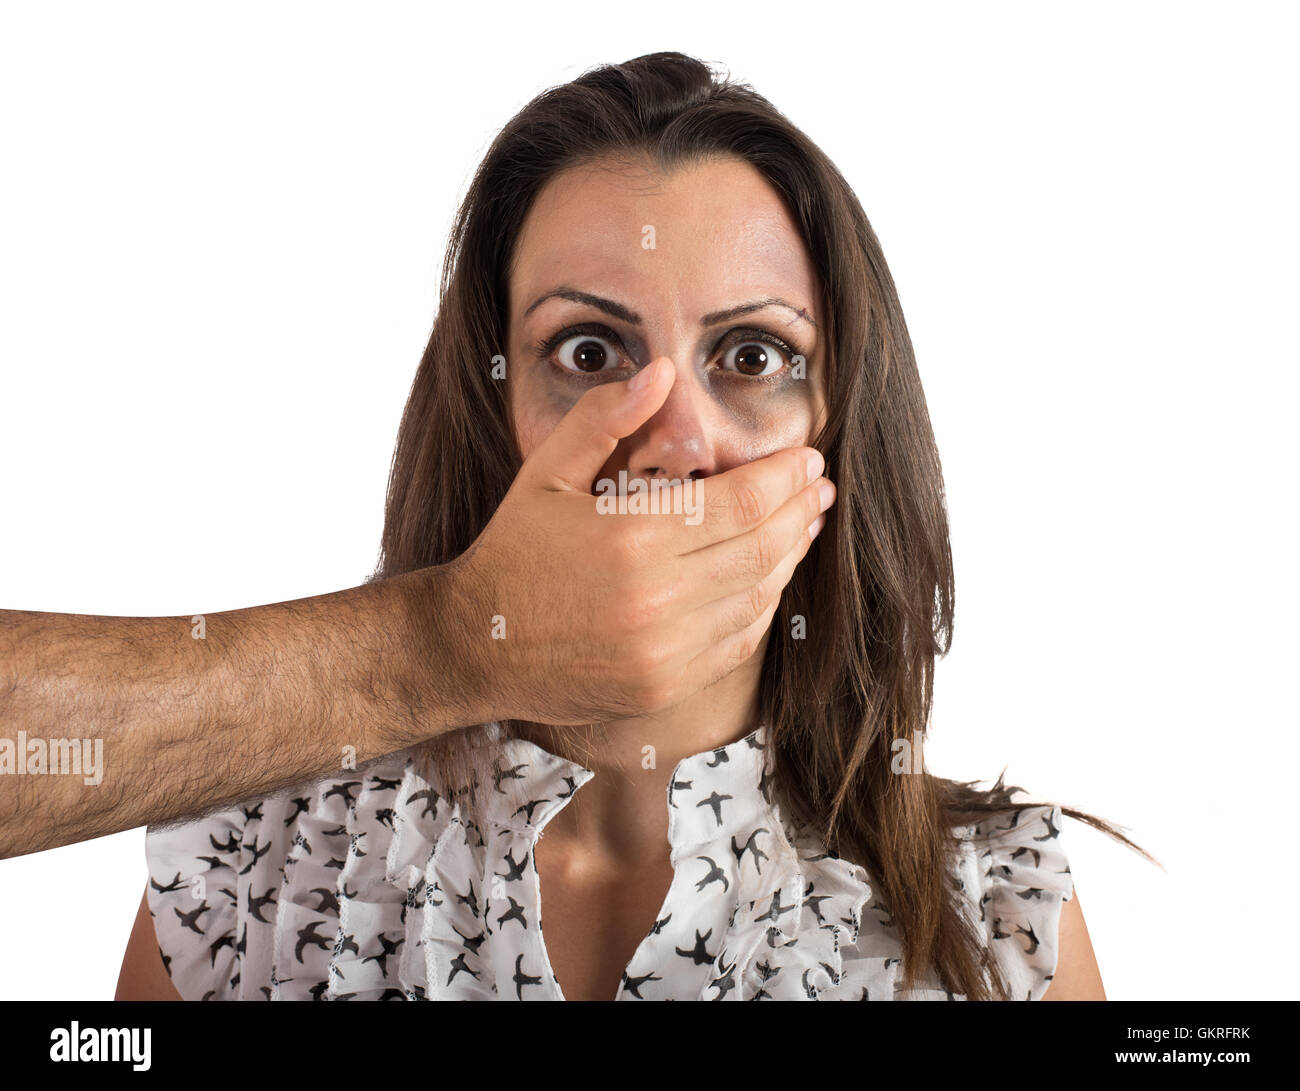 Woman terrified by the violence - Stock Image